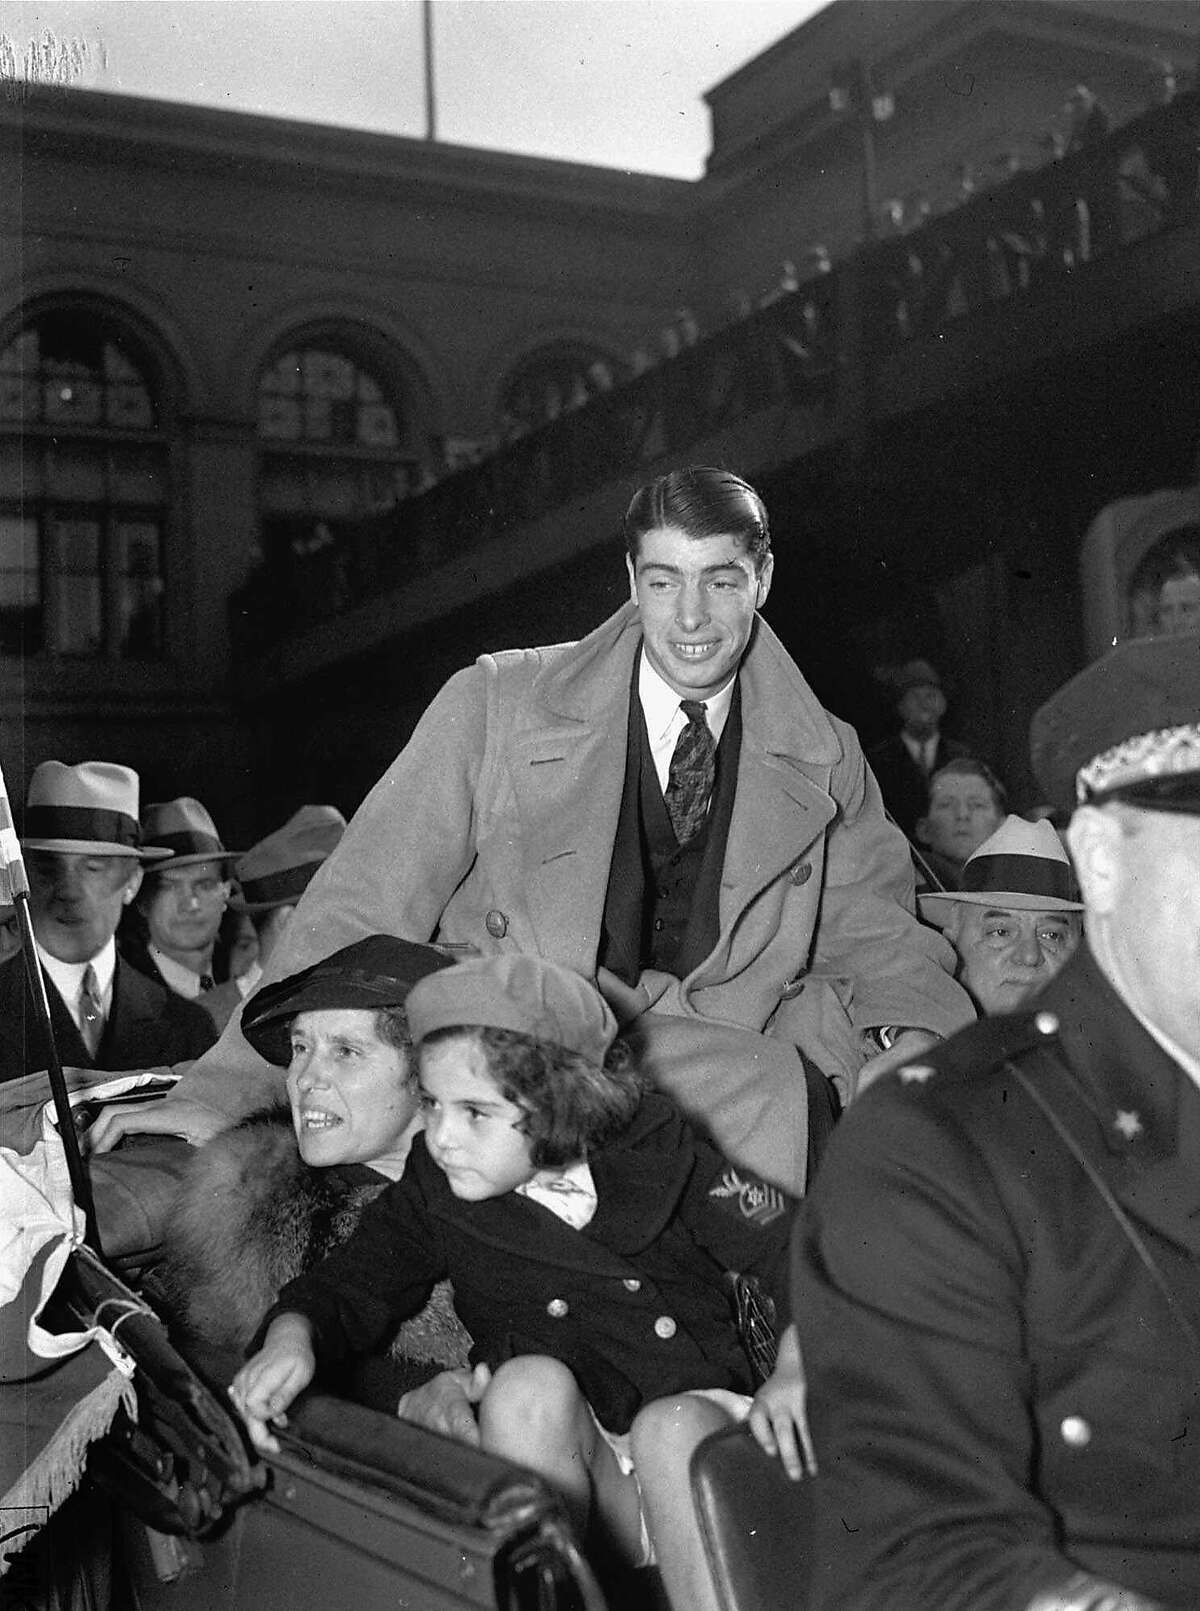 A rousing welcome was accorded Joe DiMaggio, New York Yankee outfielder and San Francisco's baseball idol, when he returned home in this Oct. 13, 1936 photo after taking part in the World Series in his first year in the majors. The sensational rookie is shown riding up Market Street in the Mayor's car with his mother and a niece. DiMaggio, the elegant Yankee Clipper whose 56-game hitting streak endures as one of the most remarkable records in baseball or any sport, died Monday, March 8, 1999 at his home in Hollywood, Fla. He was 84. (AP Photo/FILE0